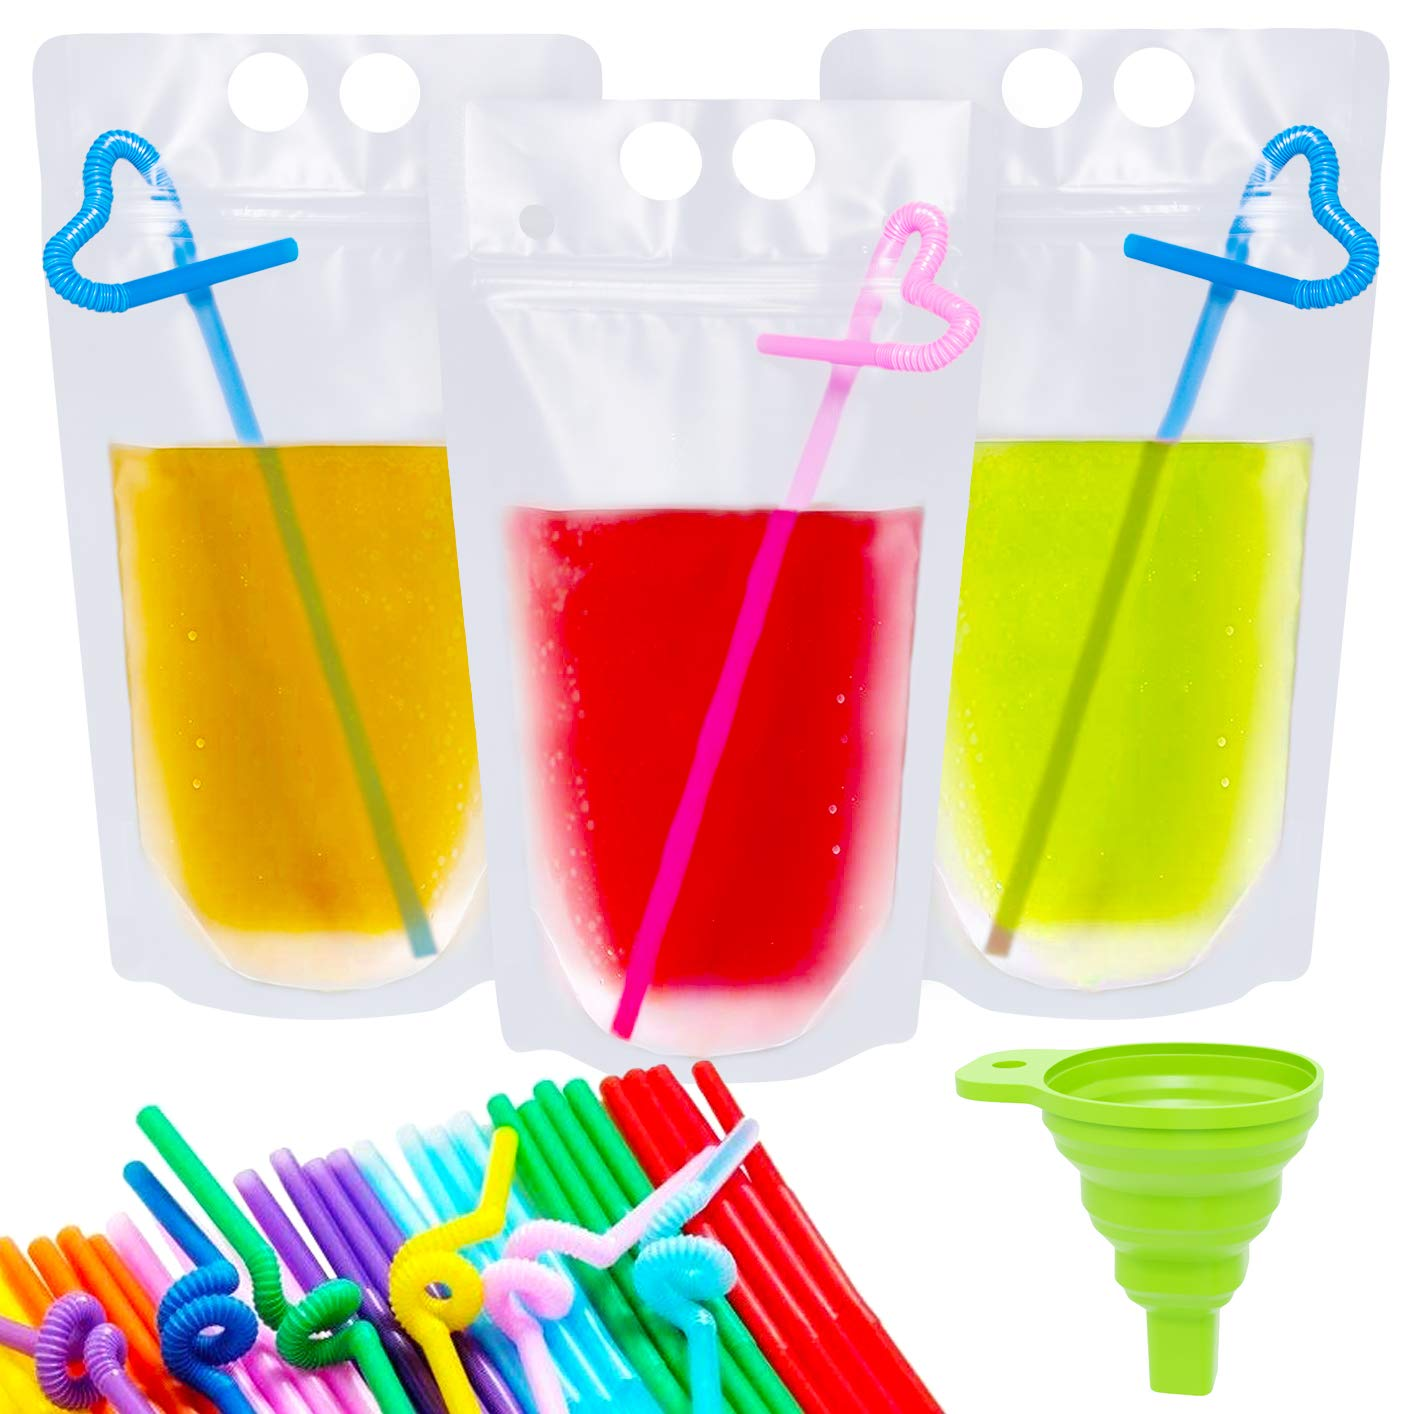 Ouddy 50 Pcs Drink Reusable Juice Pouches Smoothie Stand Up Disposable Plastic Zipper Drink Bags with 50 Straws & Silicone Funnel